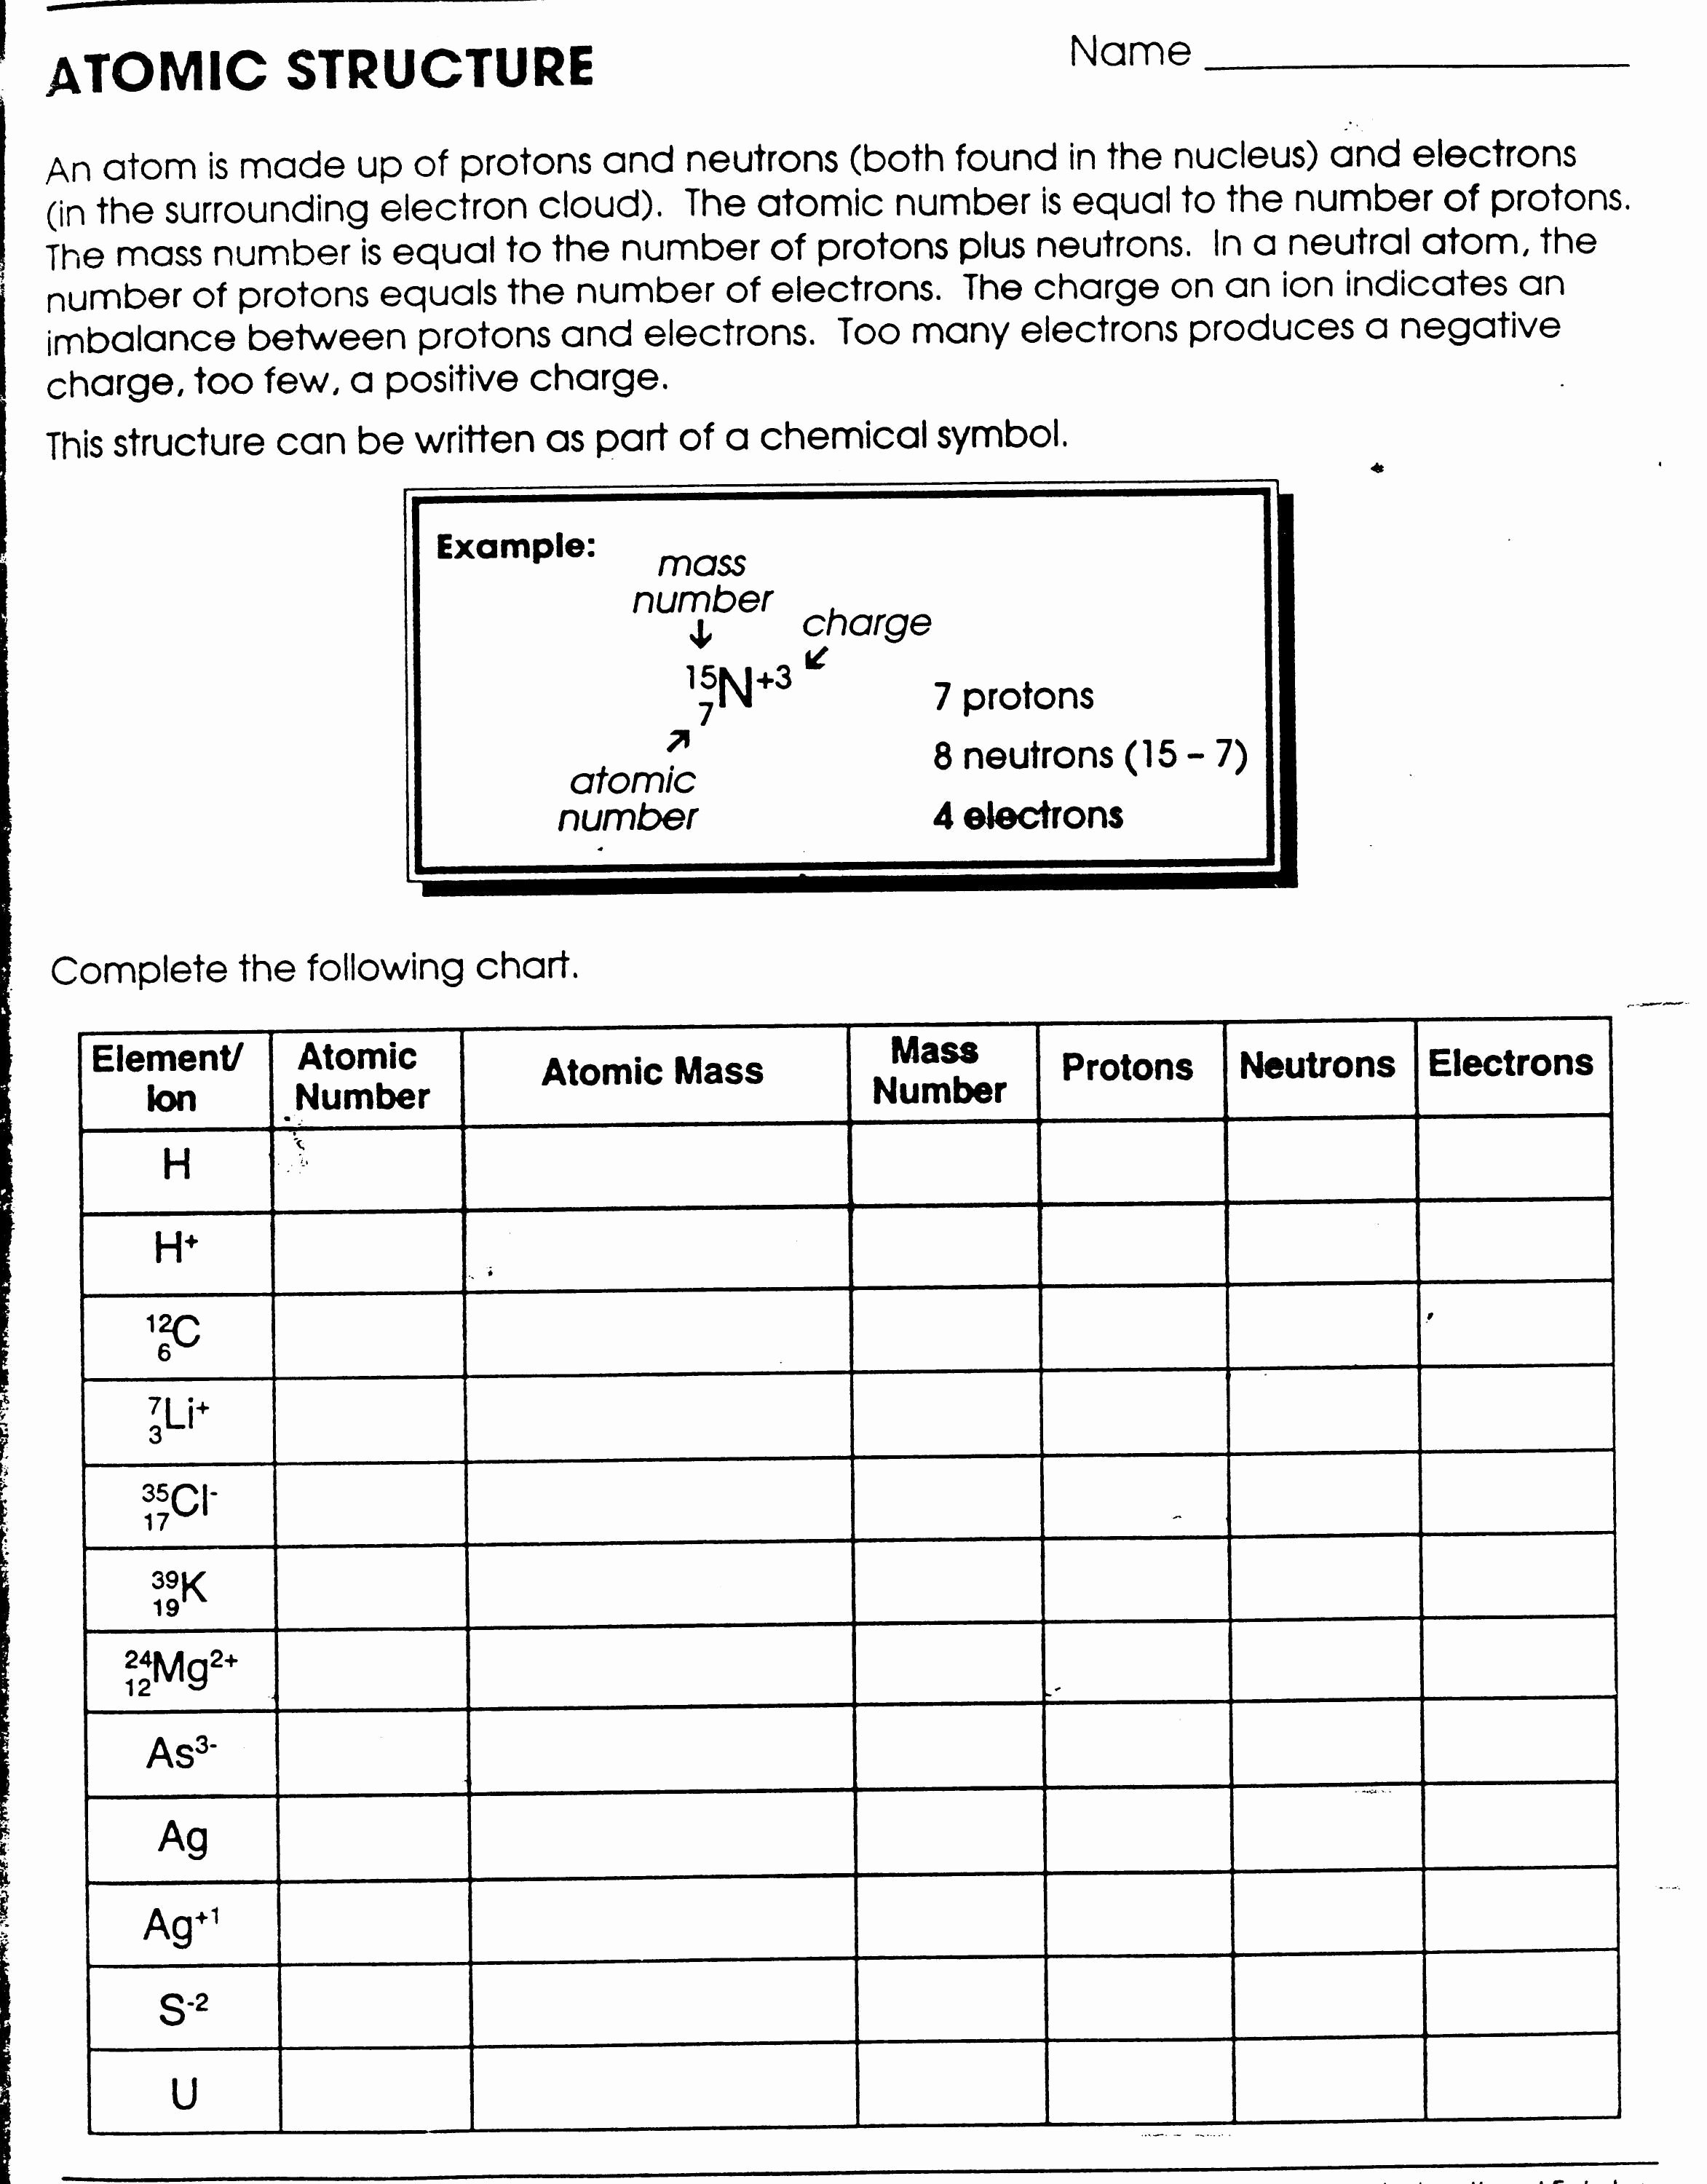 Atomic Structure Review Worksheet Inspirational Skills Worksheet Concept Review Section the Development